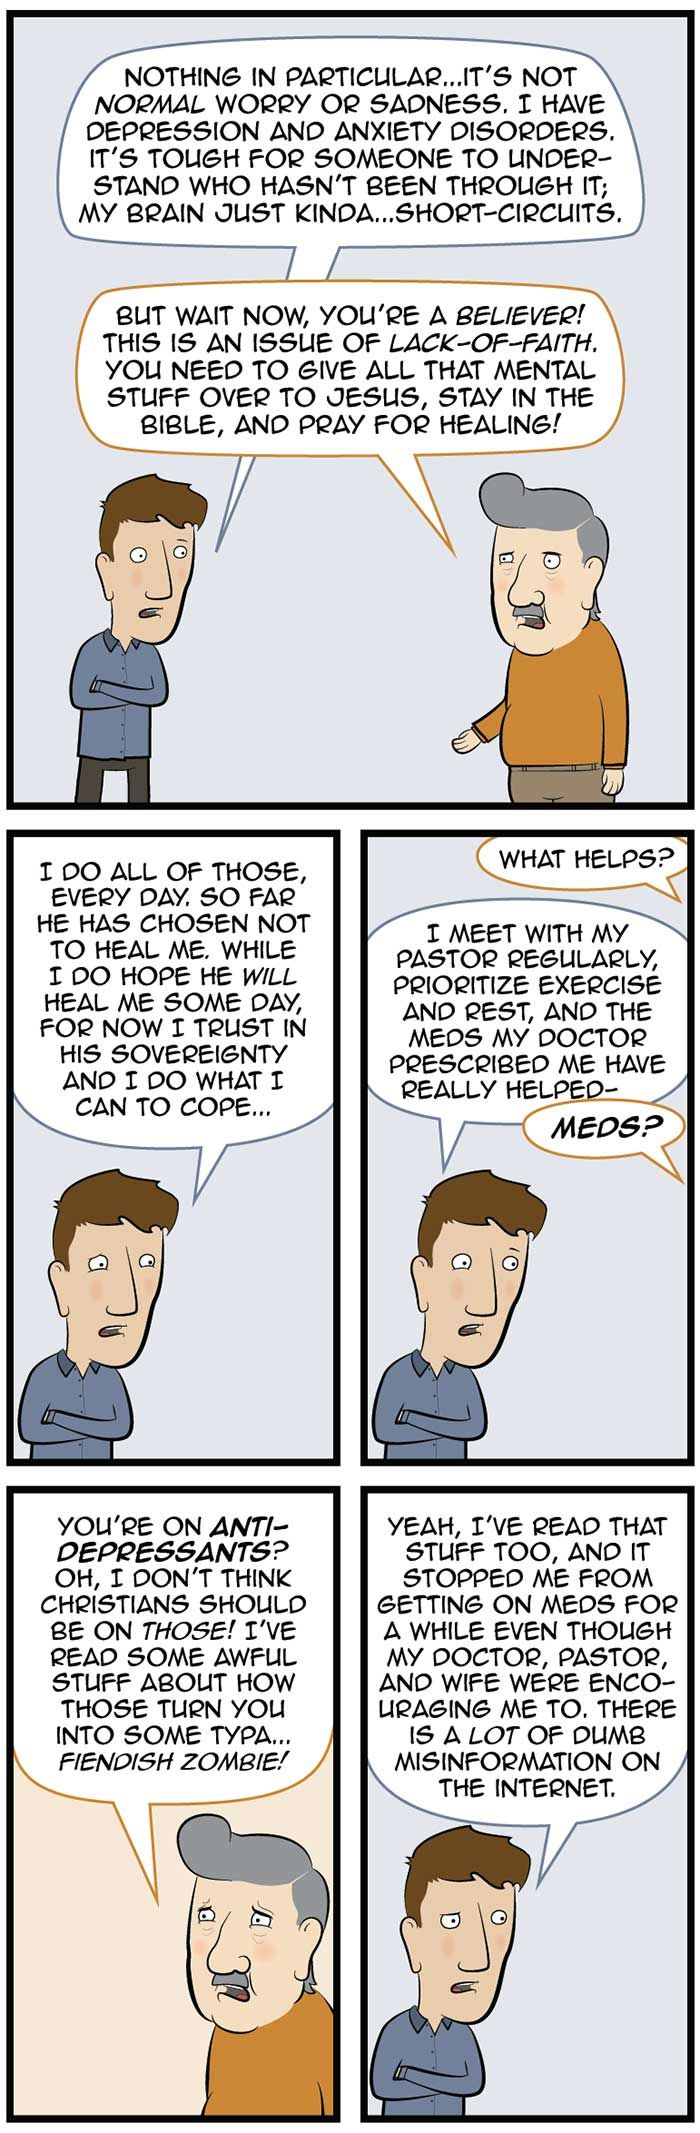 Christians and anti-depressant meds - the whole cartoon is really worthwhile  - can only pin part of it here.